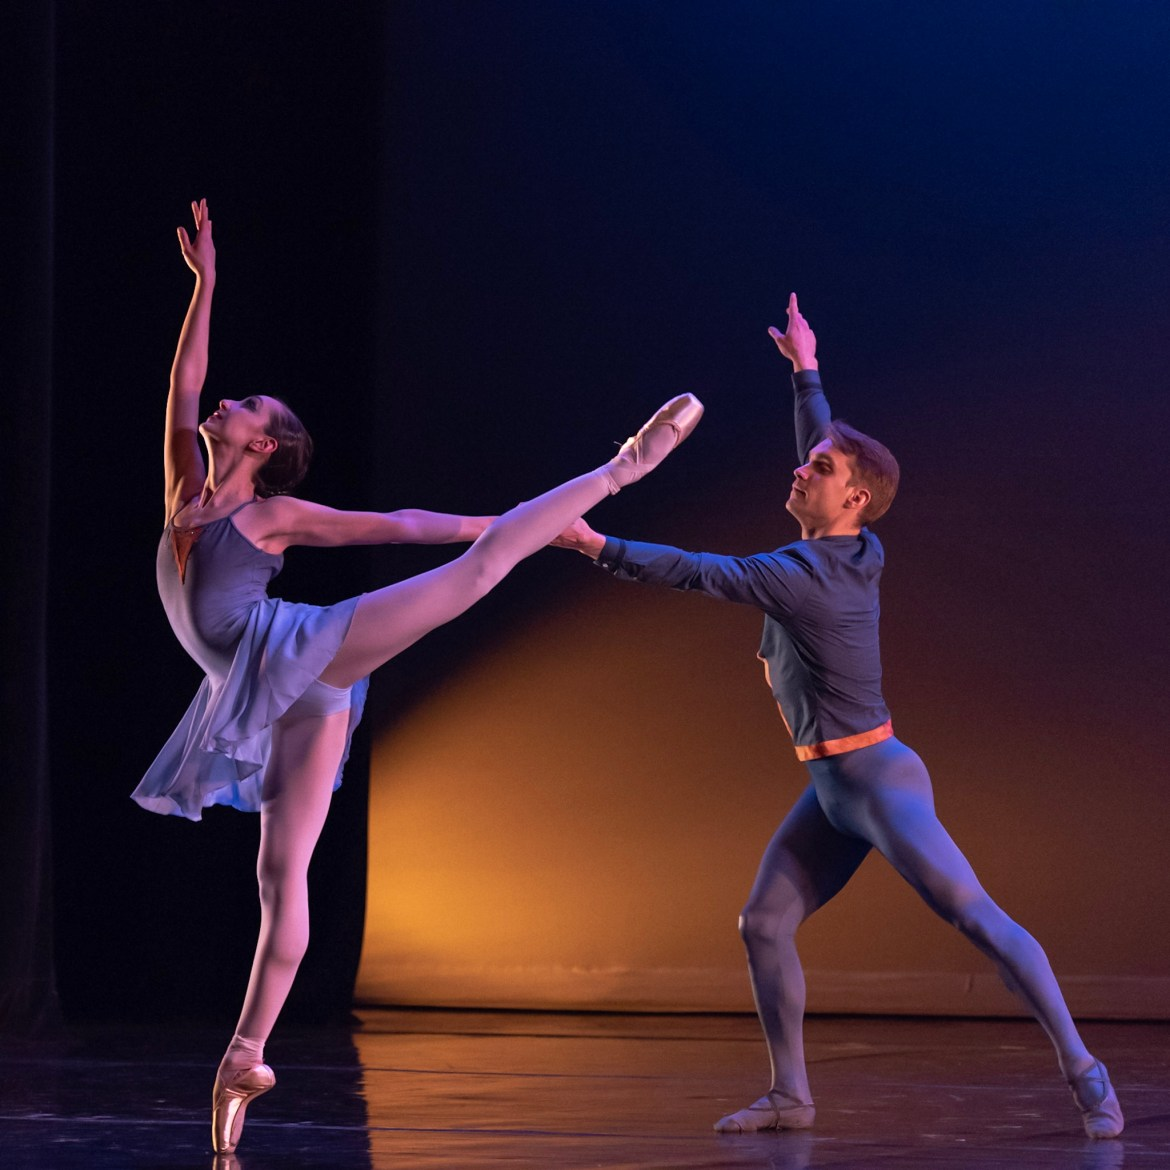 Chicago Repertory Ballet's Miriam Rose LeDuc and Django Allegretti (Photo by Topher Alexander)